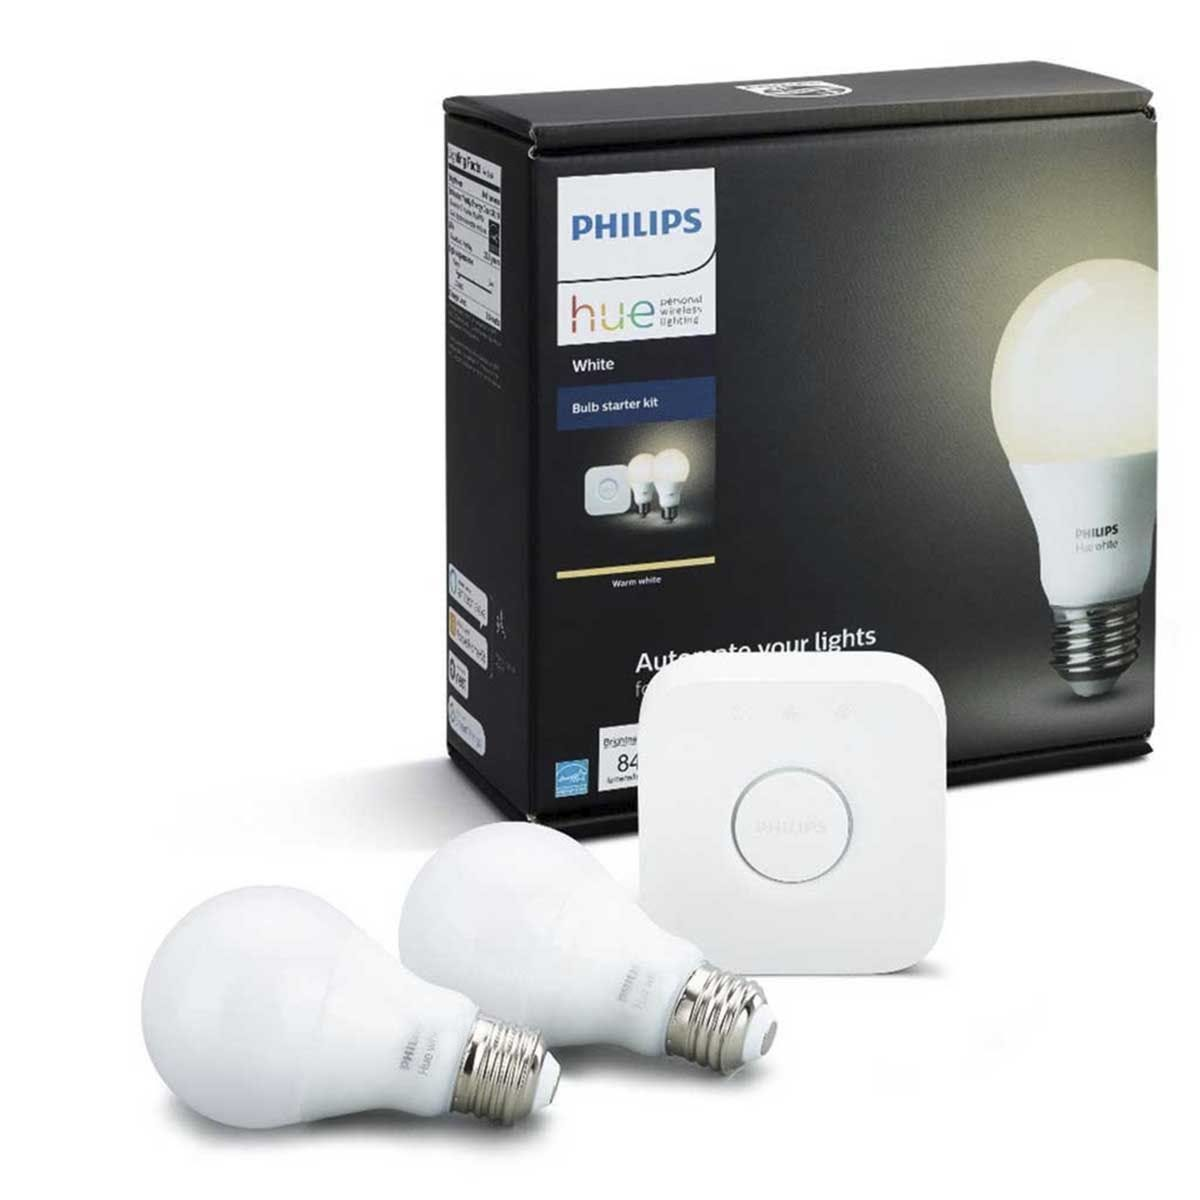 Philips Hue Smart WiFi Dimmable Warm White LED Edison Screw (ES) 60W Twin Light Bulb with Philips Hue Bridge